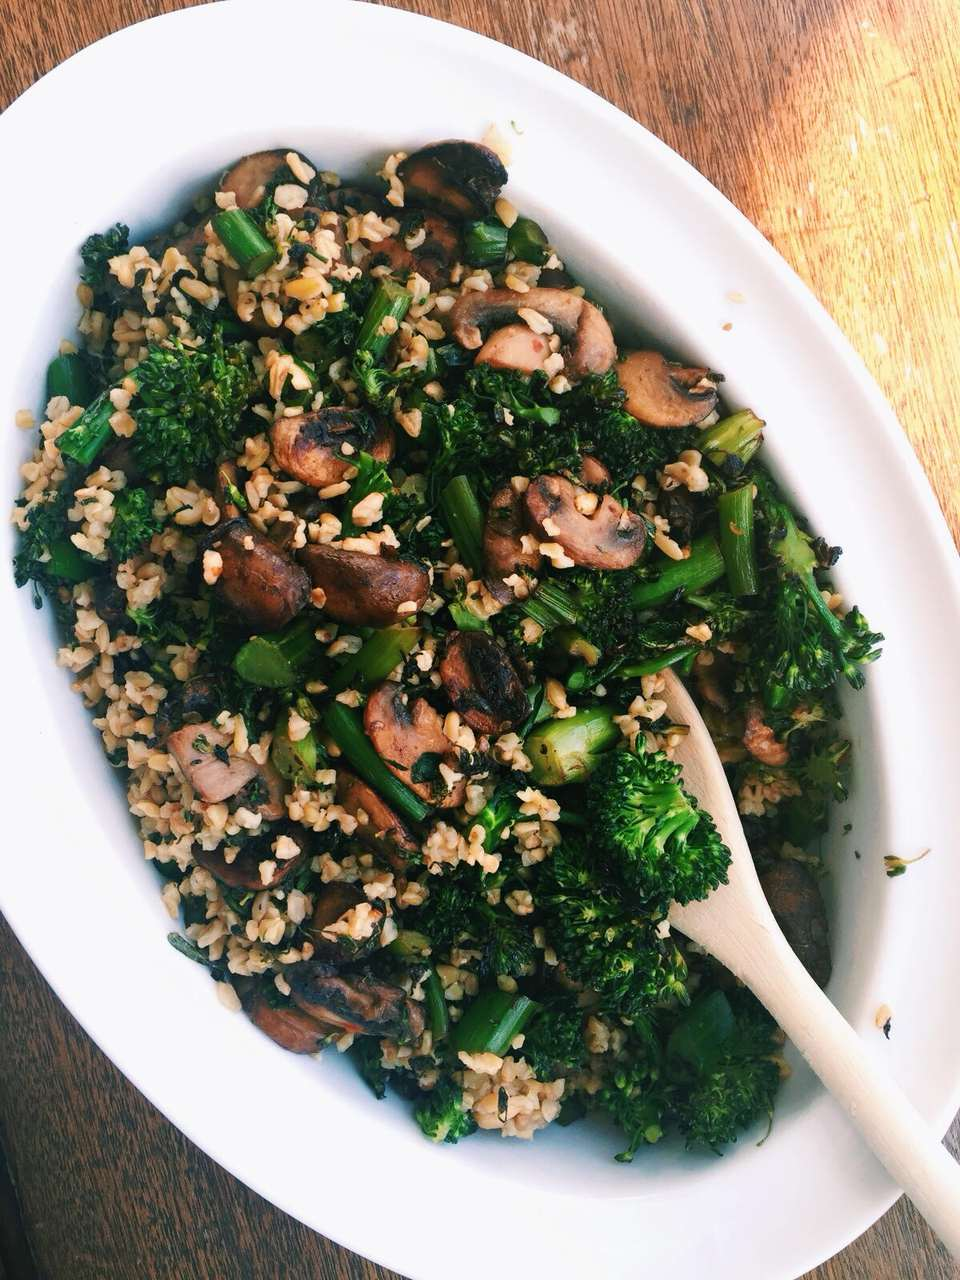 Sautéed Mushroom, Broccoli Rabe and Freekeh Salad